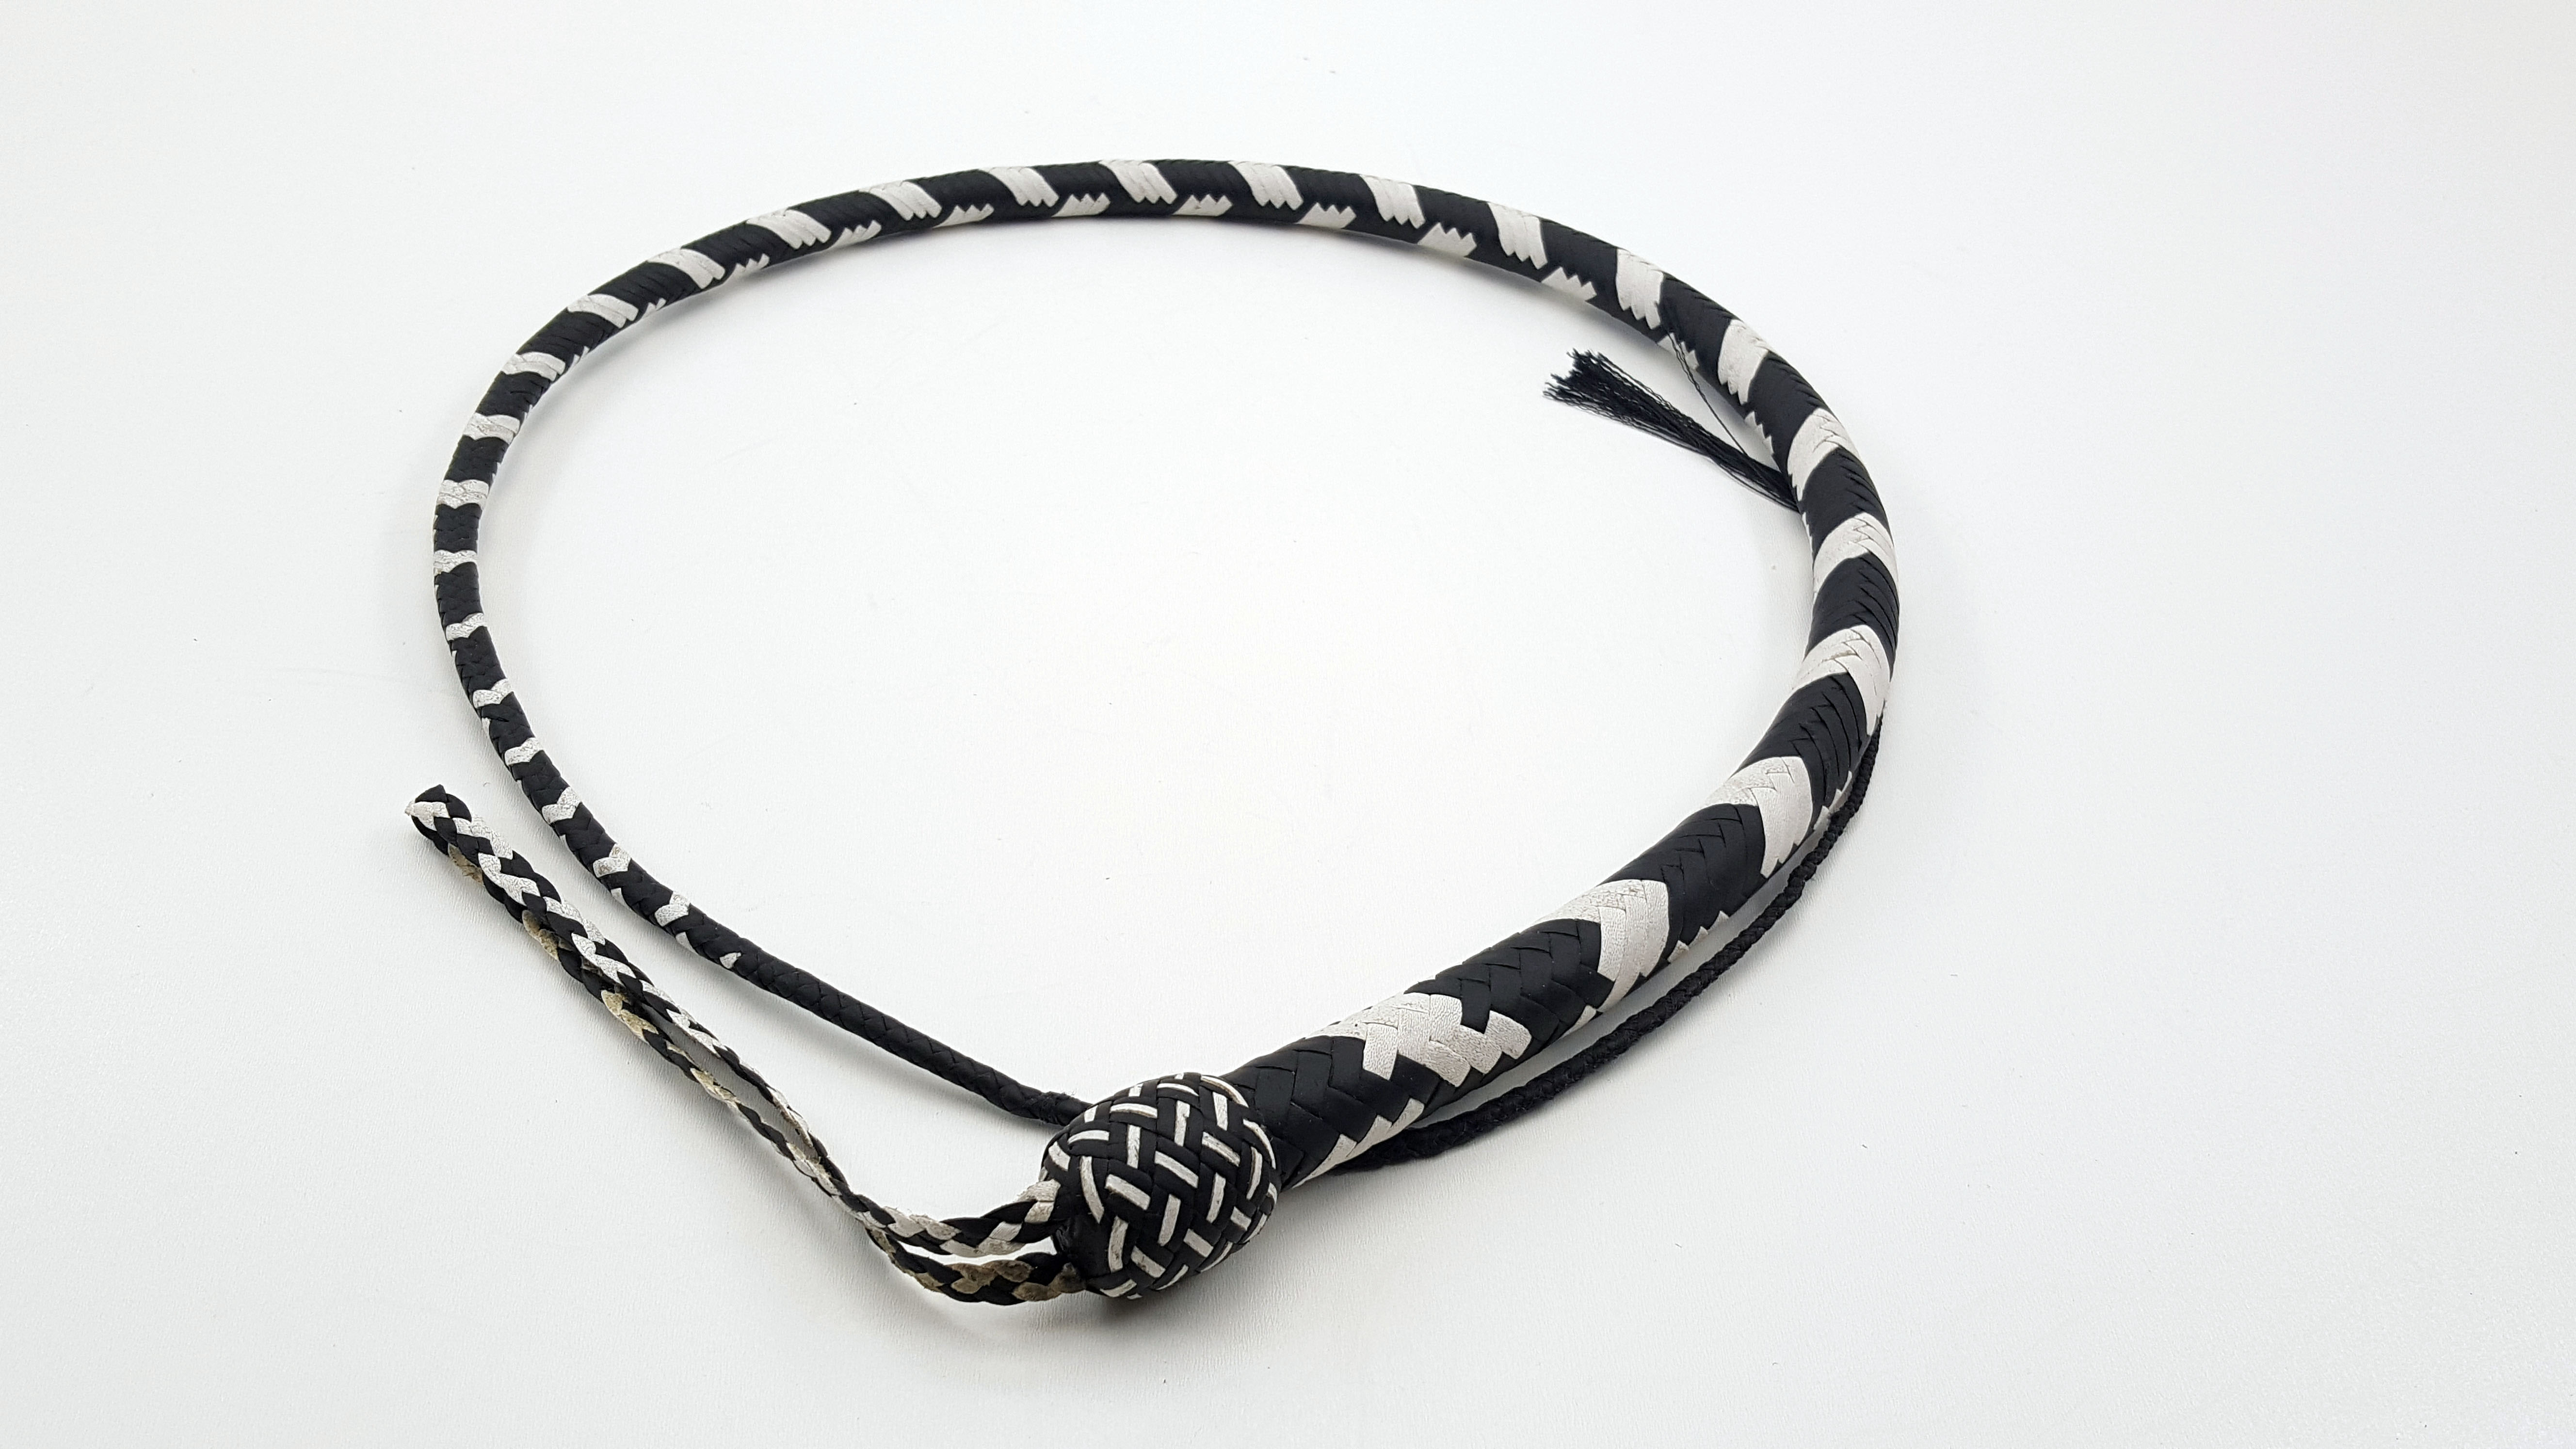 Black and White 16 Plait Signal Whip